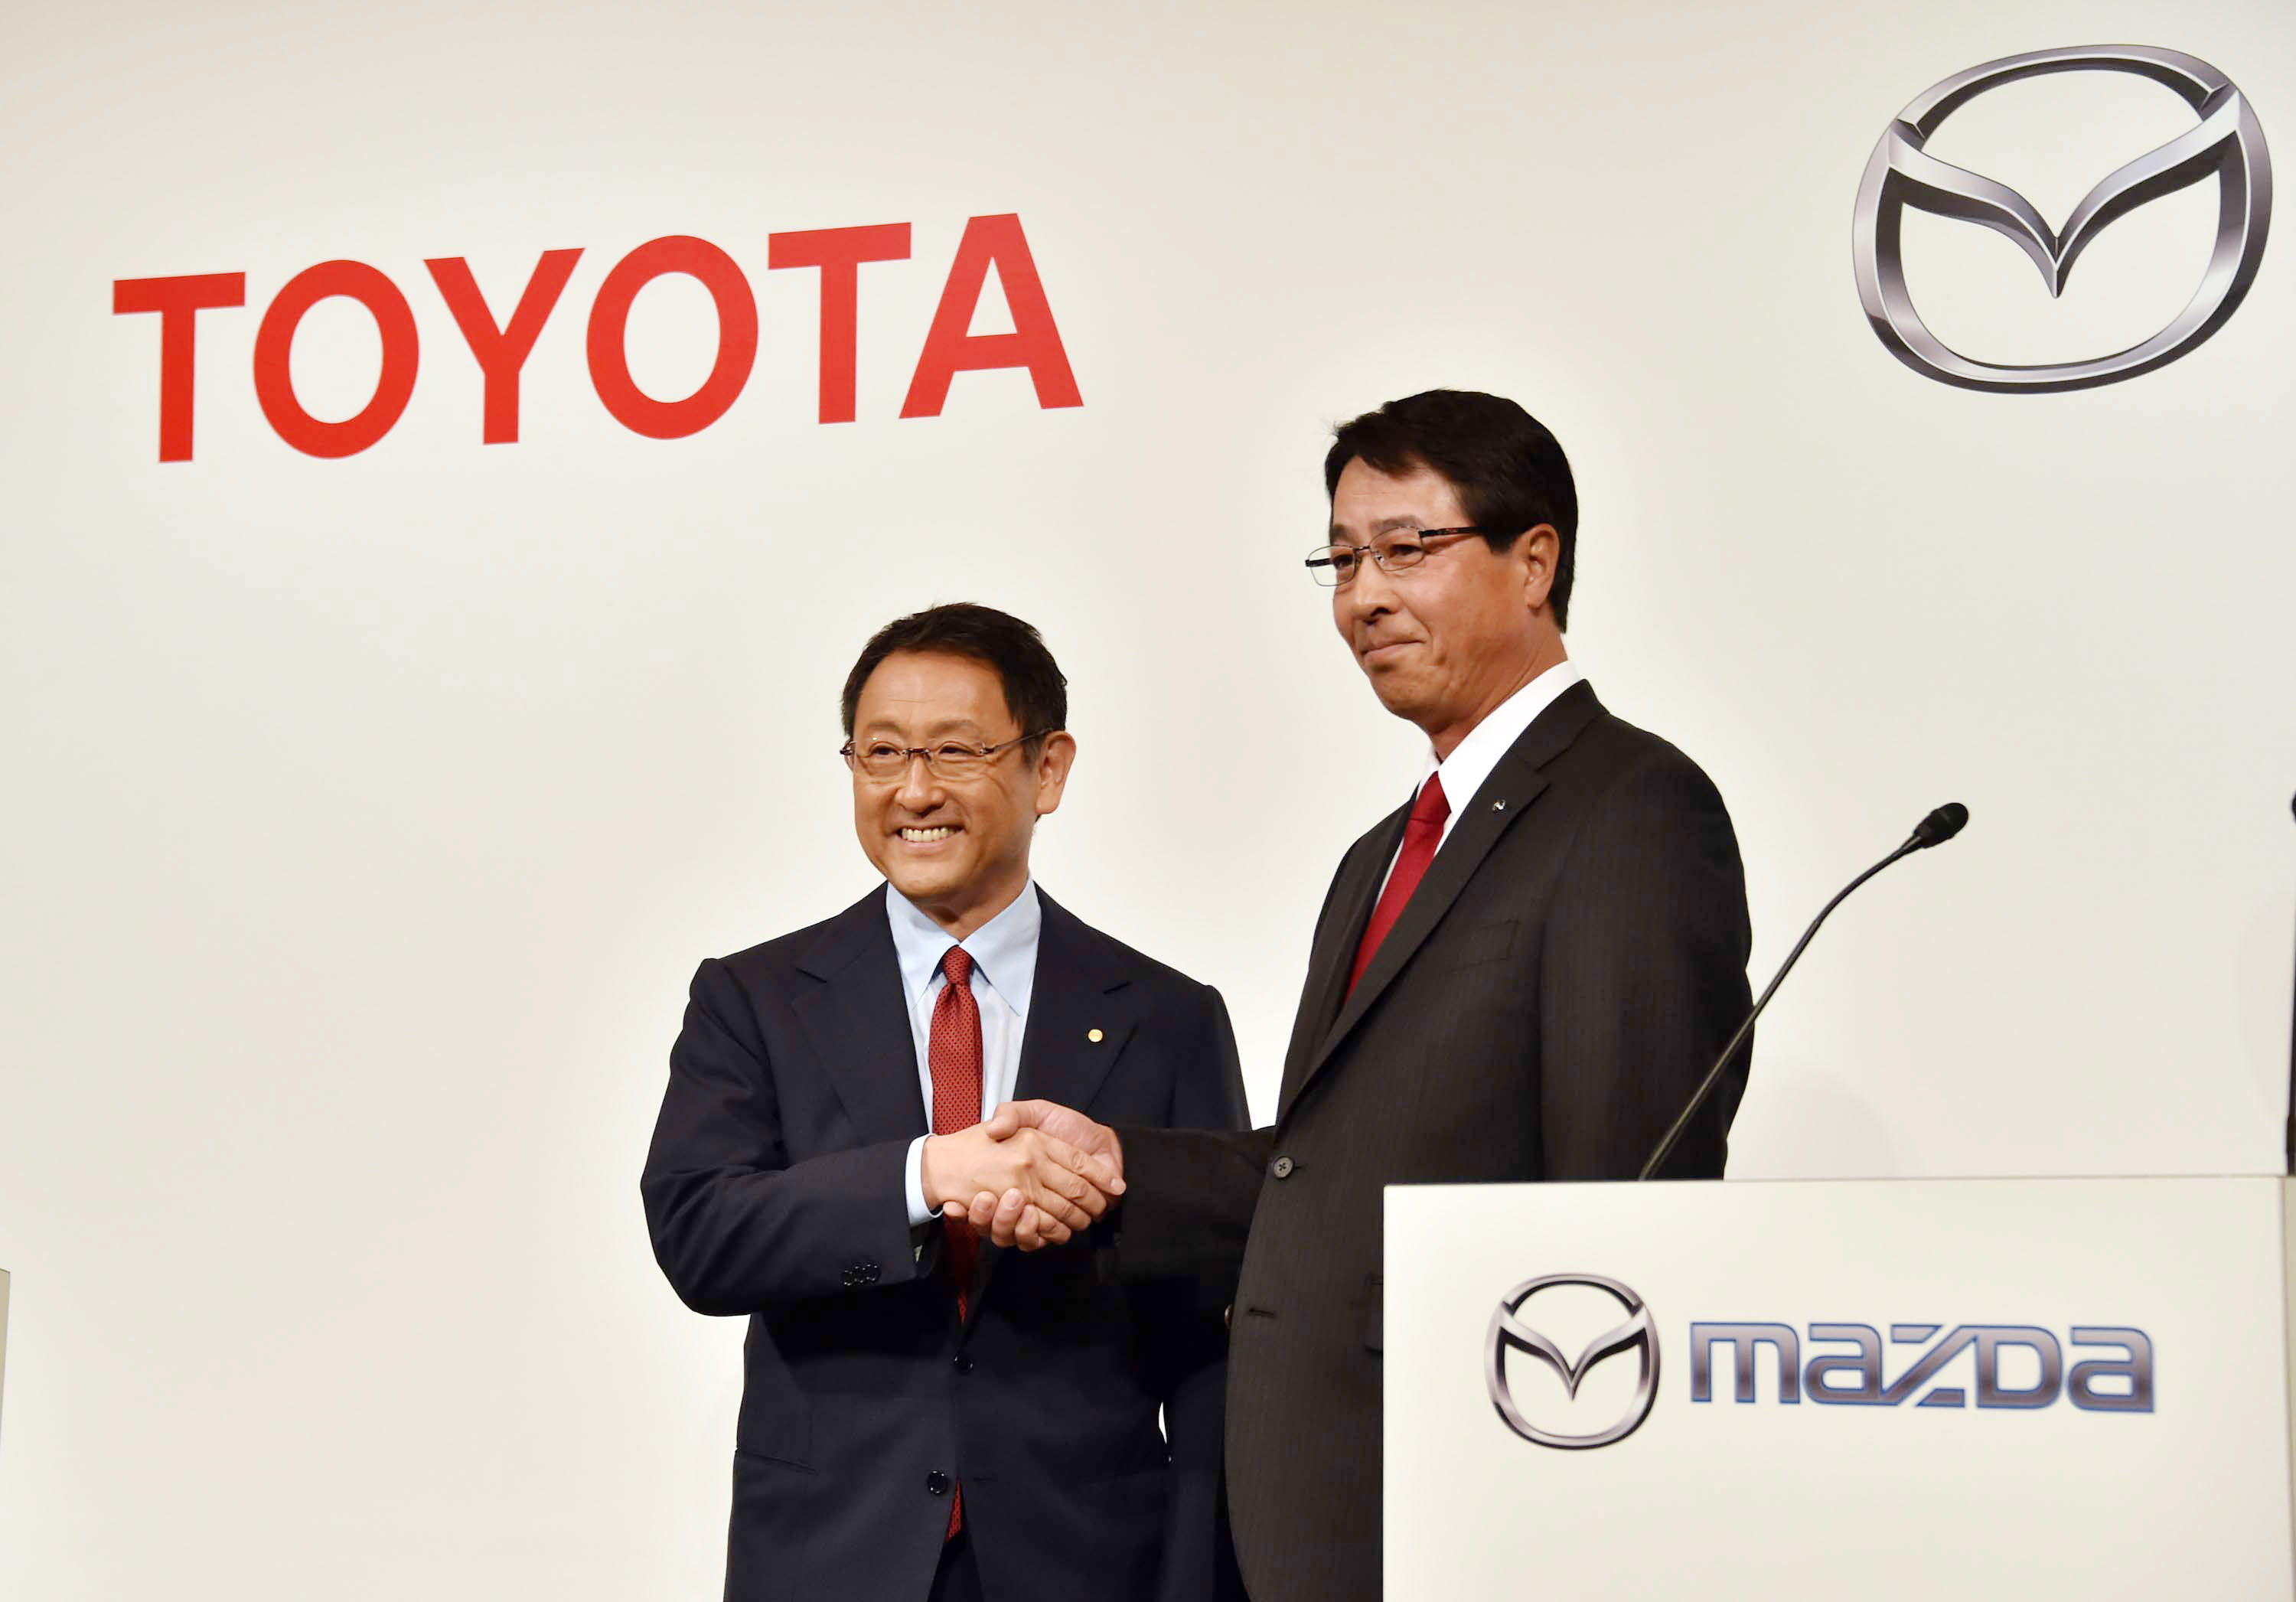 Tokyota motor co and Mazda motor corp